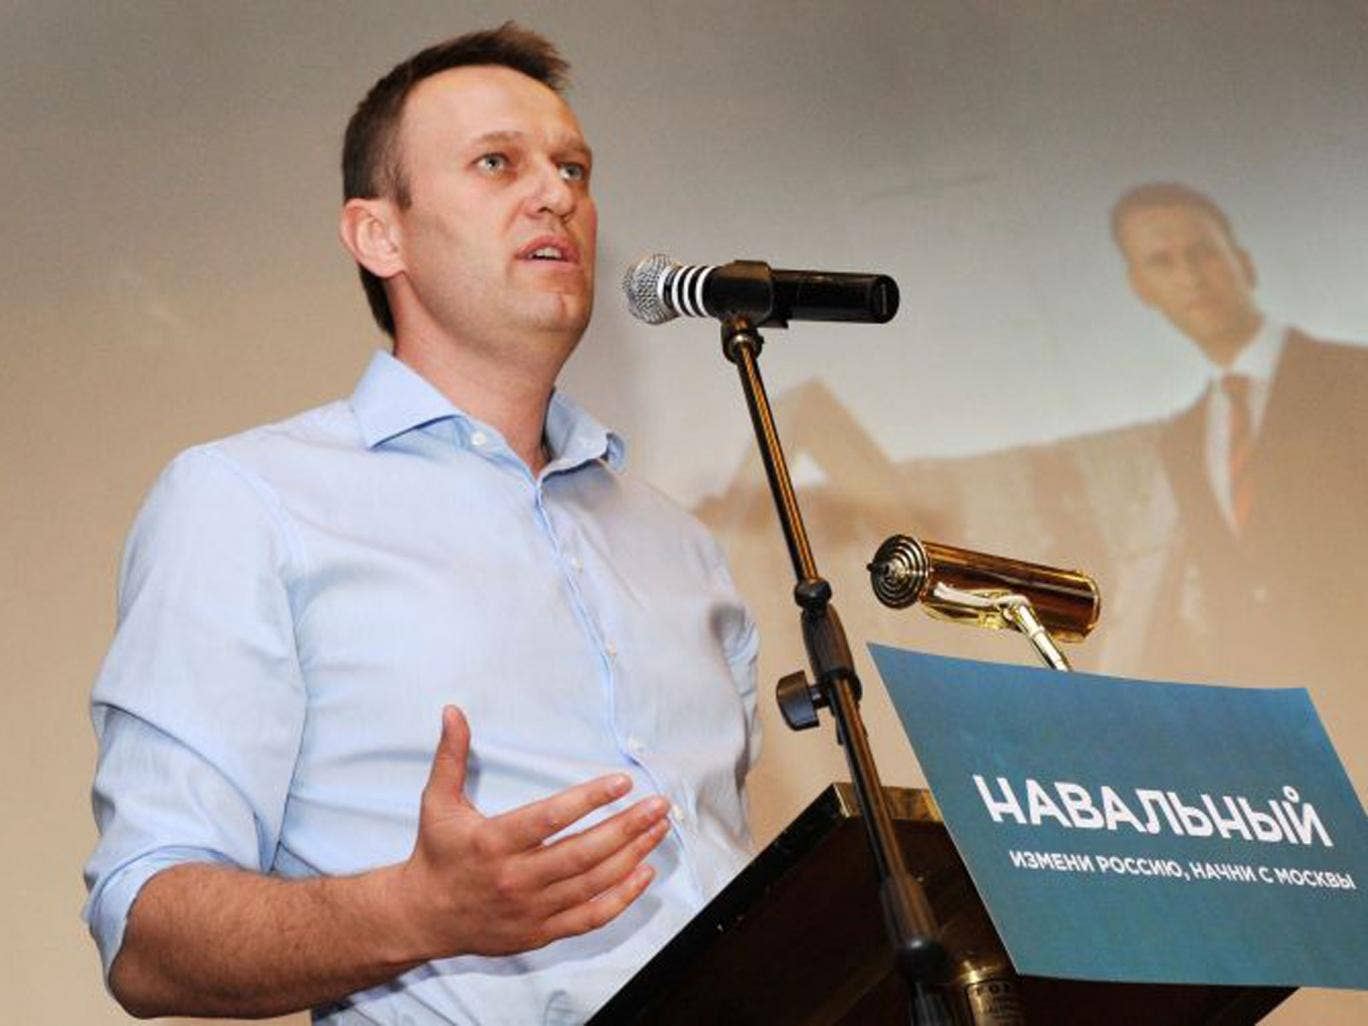 The opposition politician Alexei Navalny launched his campaign to be elected mayor of Moscow on Monday